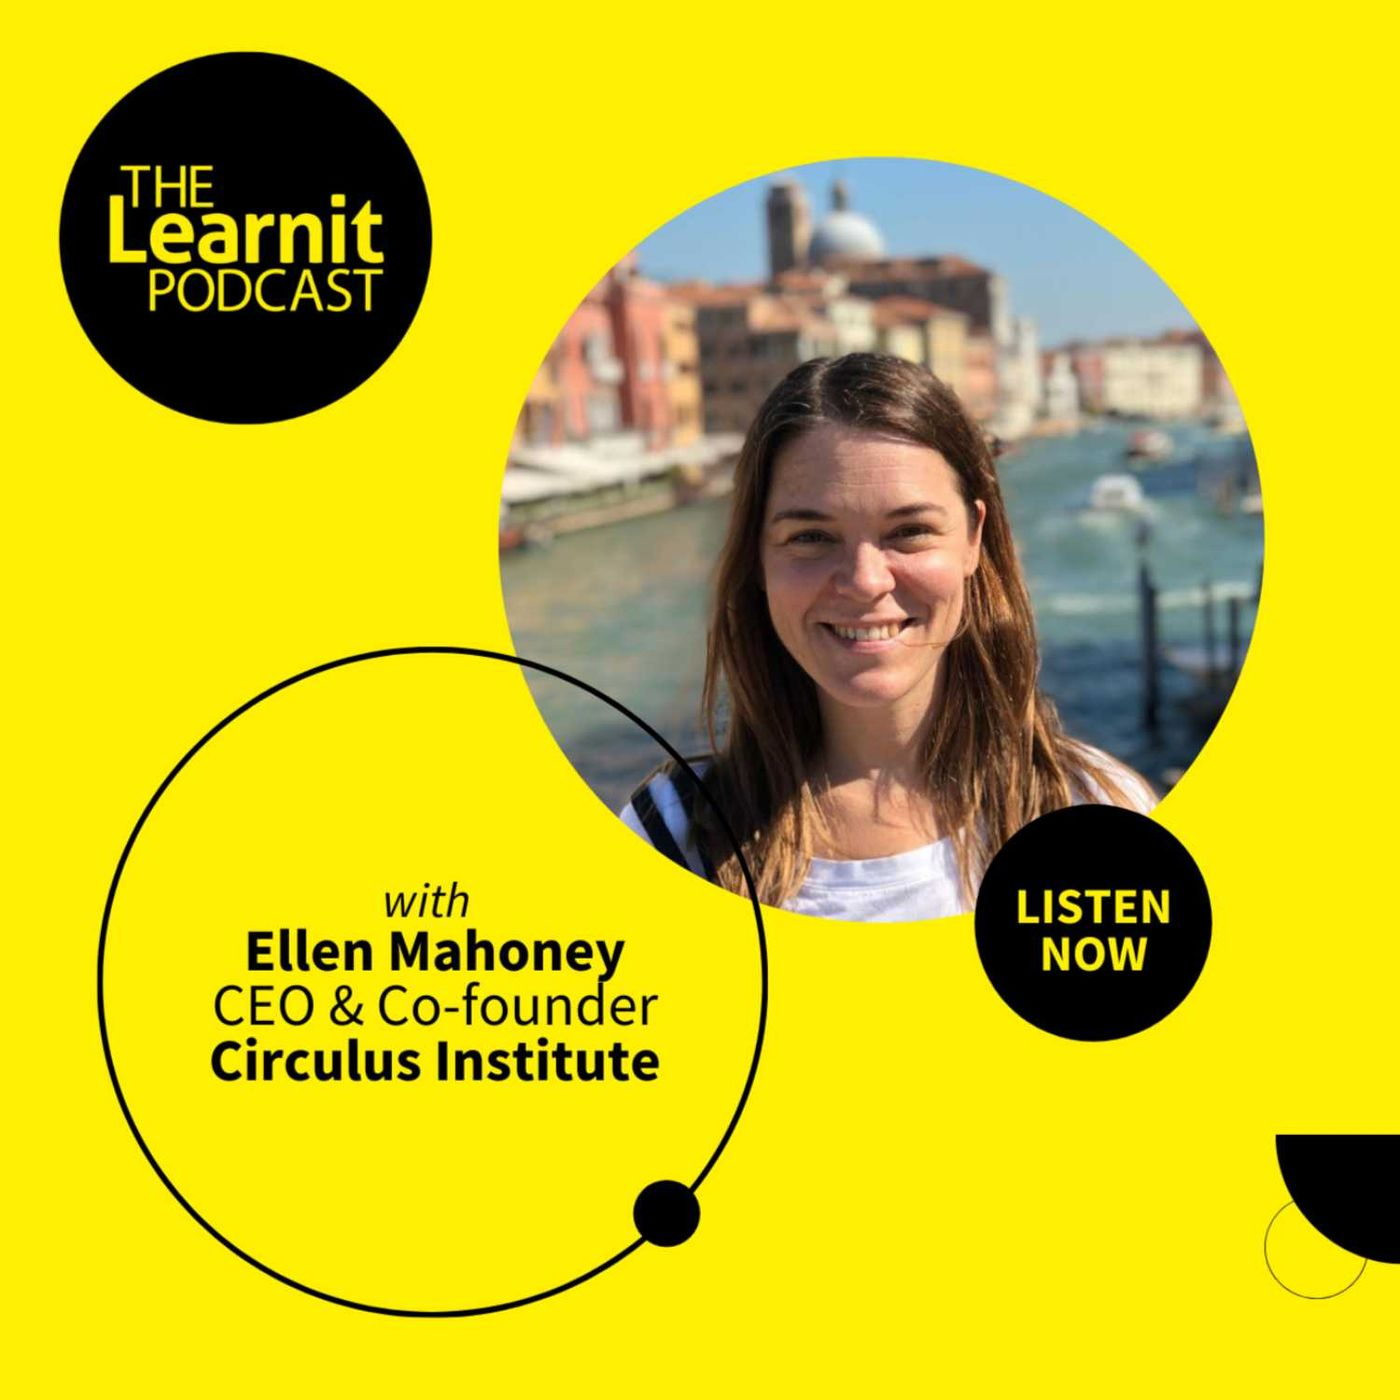 #29, Ellen Mahoney, CEO & Co-founder, Circulus Institute: Social & Emotional Learning...For Teachers